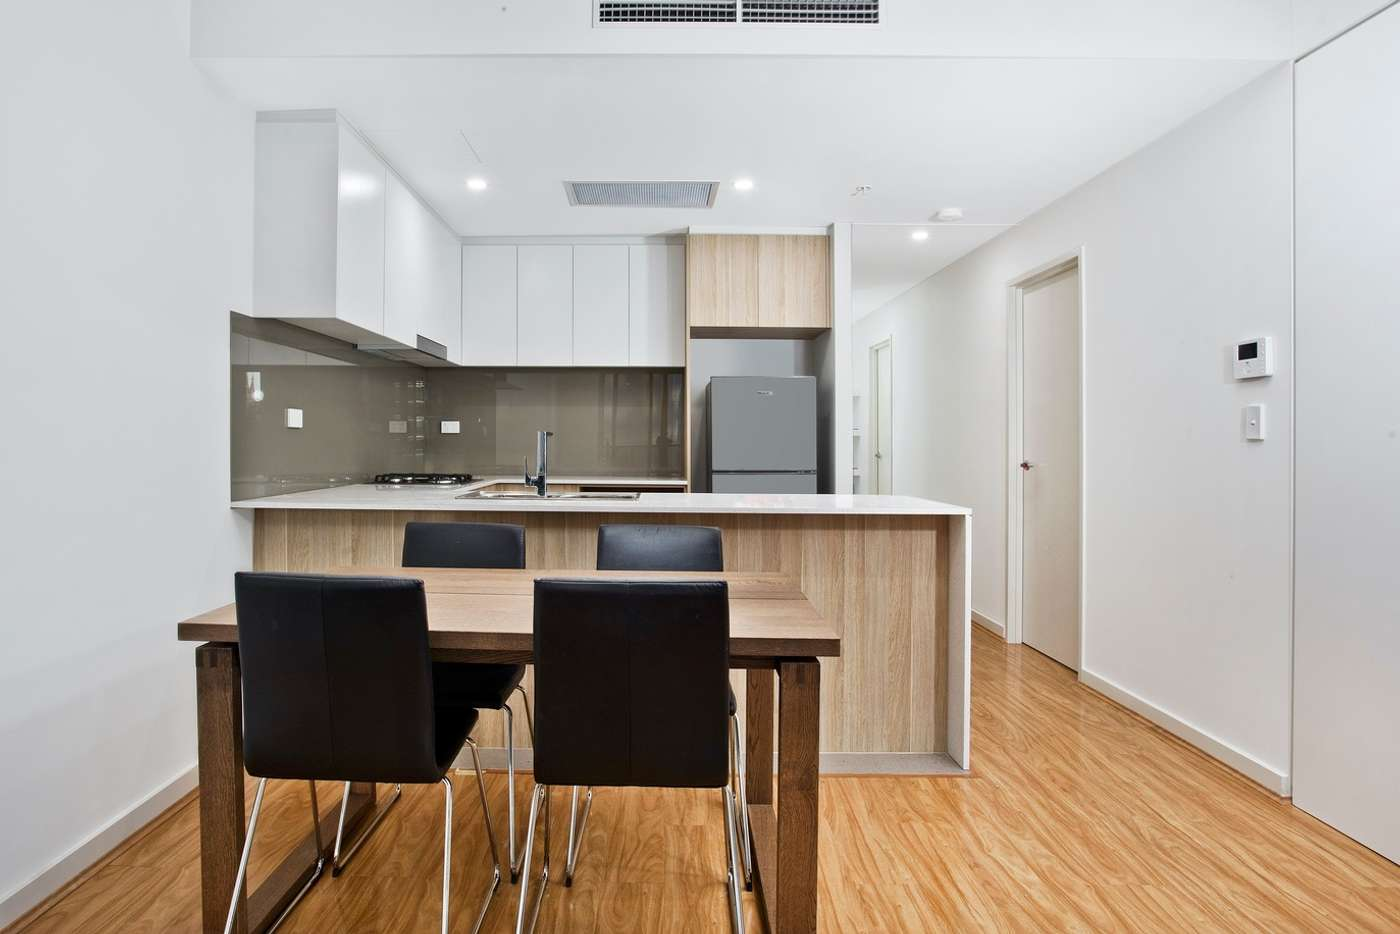 Main view of Homely apartment listing, 501/11 Hassall Street, Parramatta NSW 2150